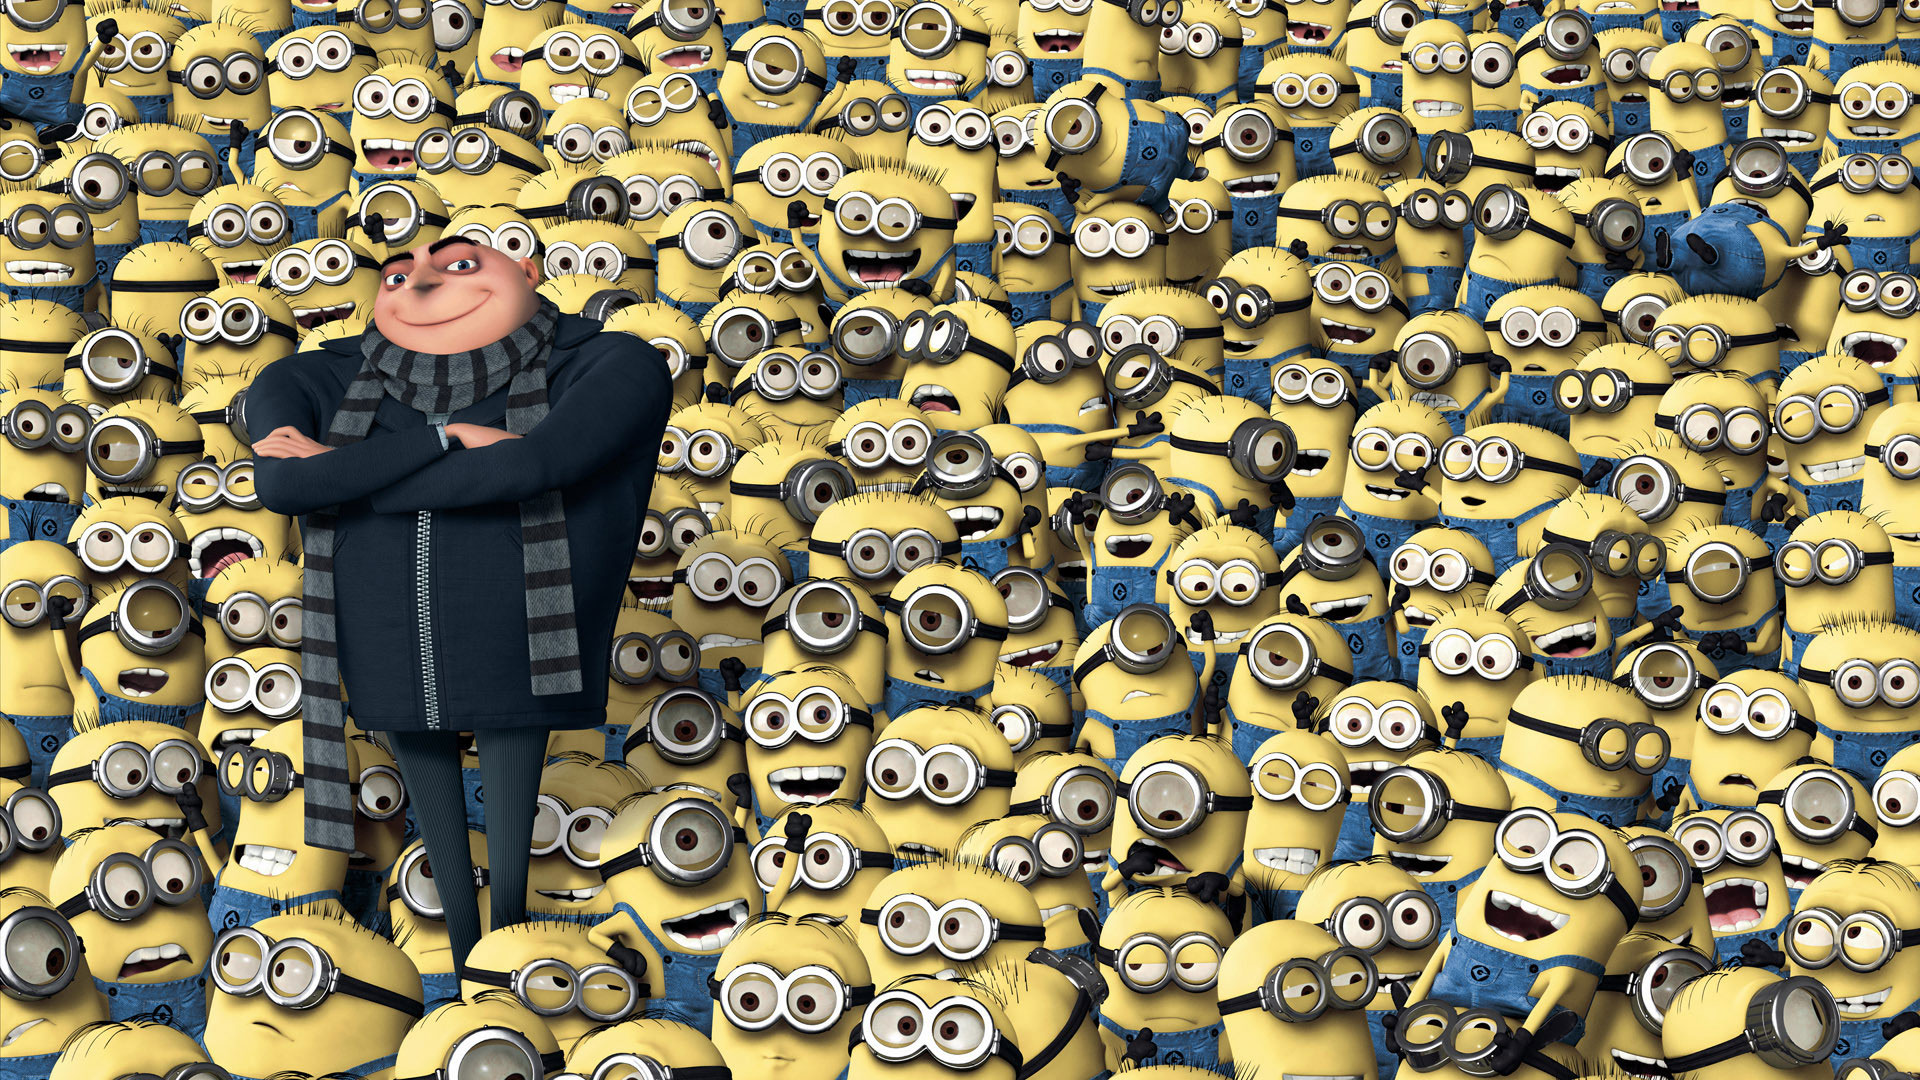 despicable me minions wallpapers - photo #24